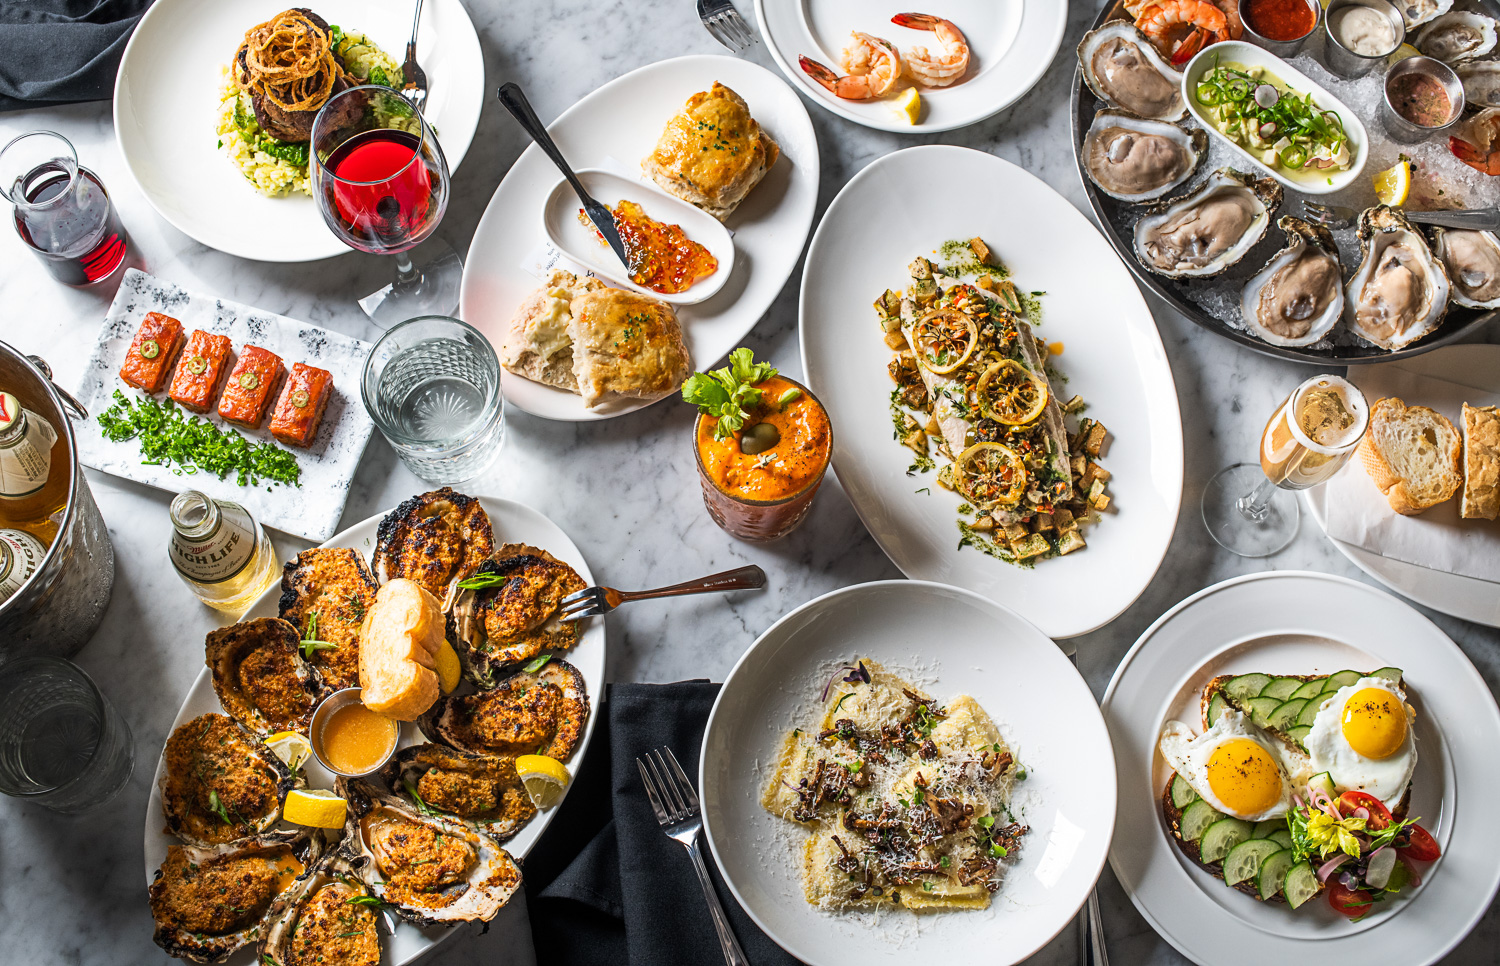 A variety of colorful and delicious looking dishes on a table